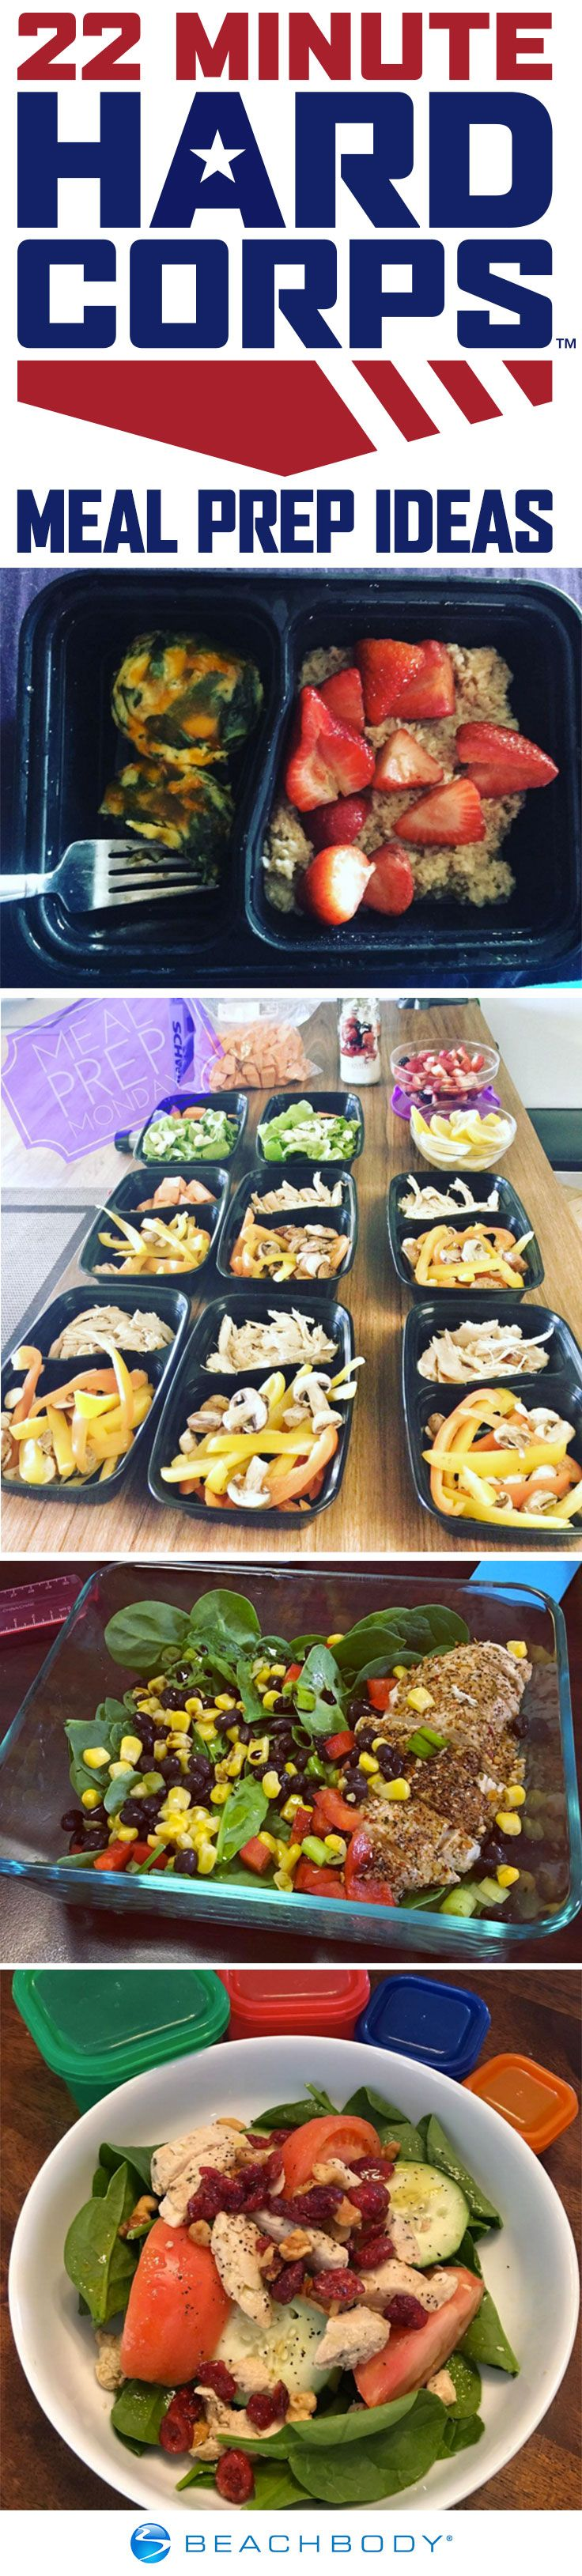 When you're just getting started, meal prep can feel overwhelming. Check out how people are meal prepping for 22 Minute Hard Corps and get tips and recipes.